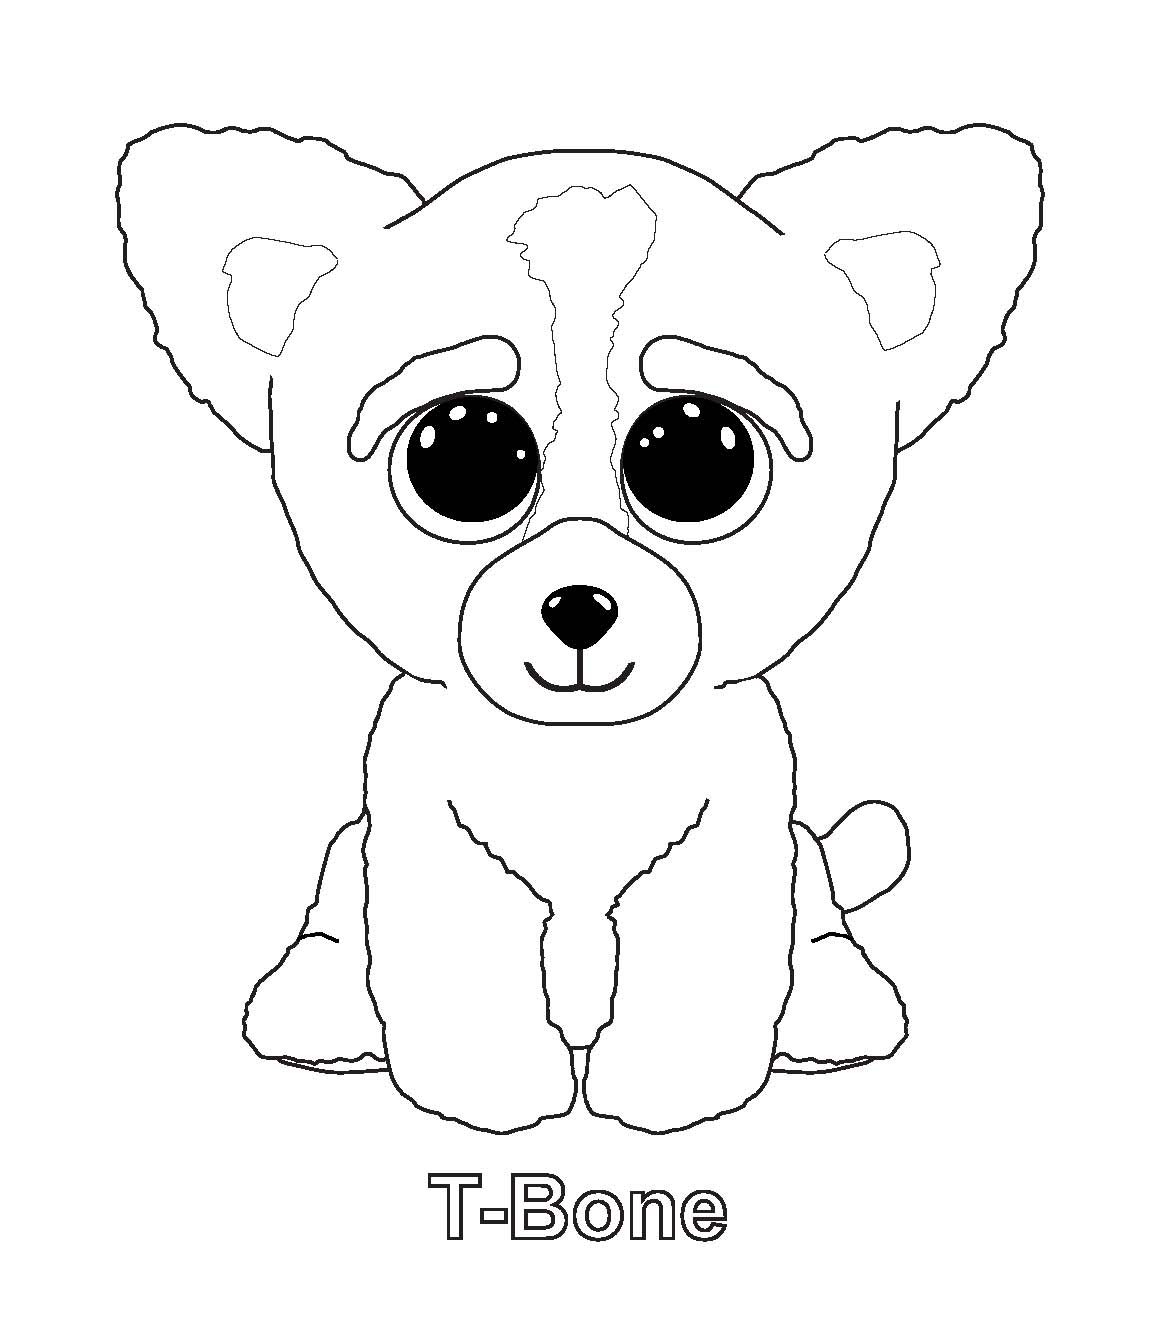 1170x1321 Ty Beanie Boos Coloring Pages T Bone Coloring